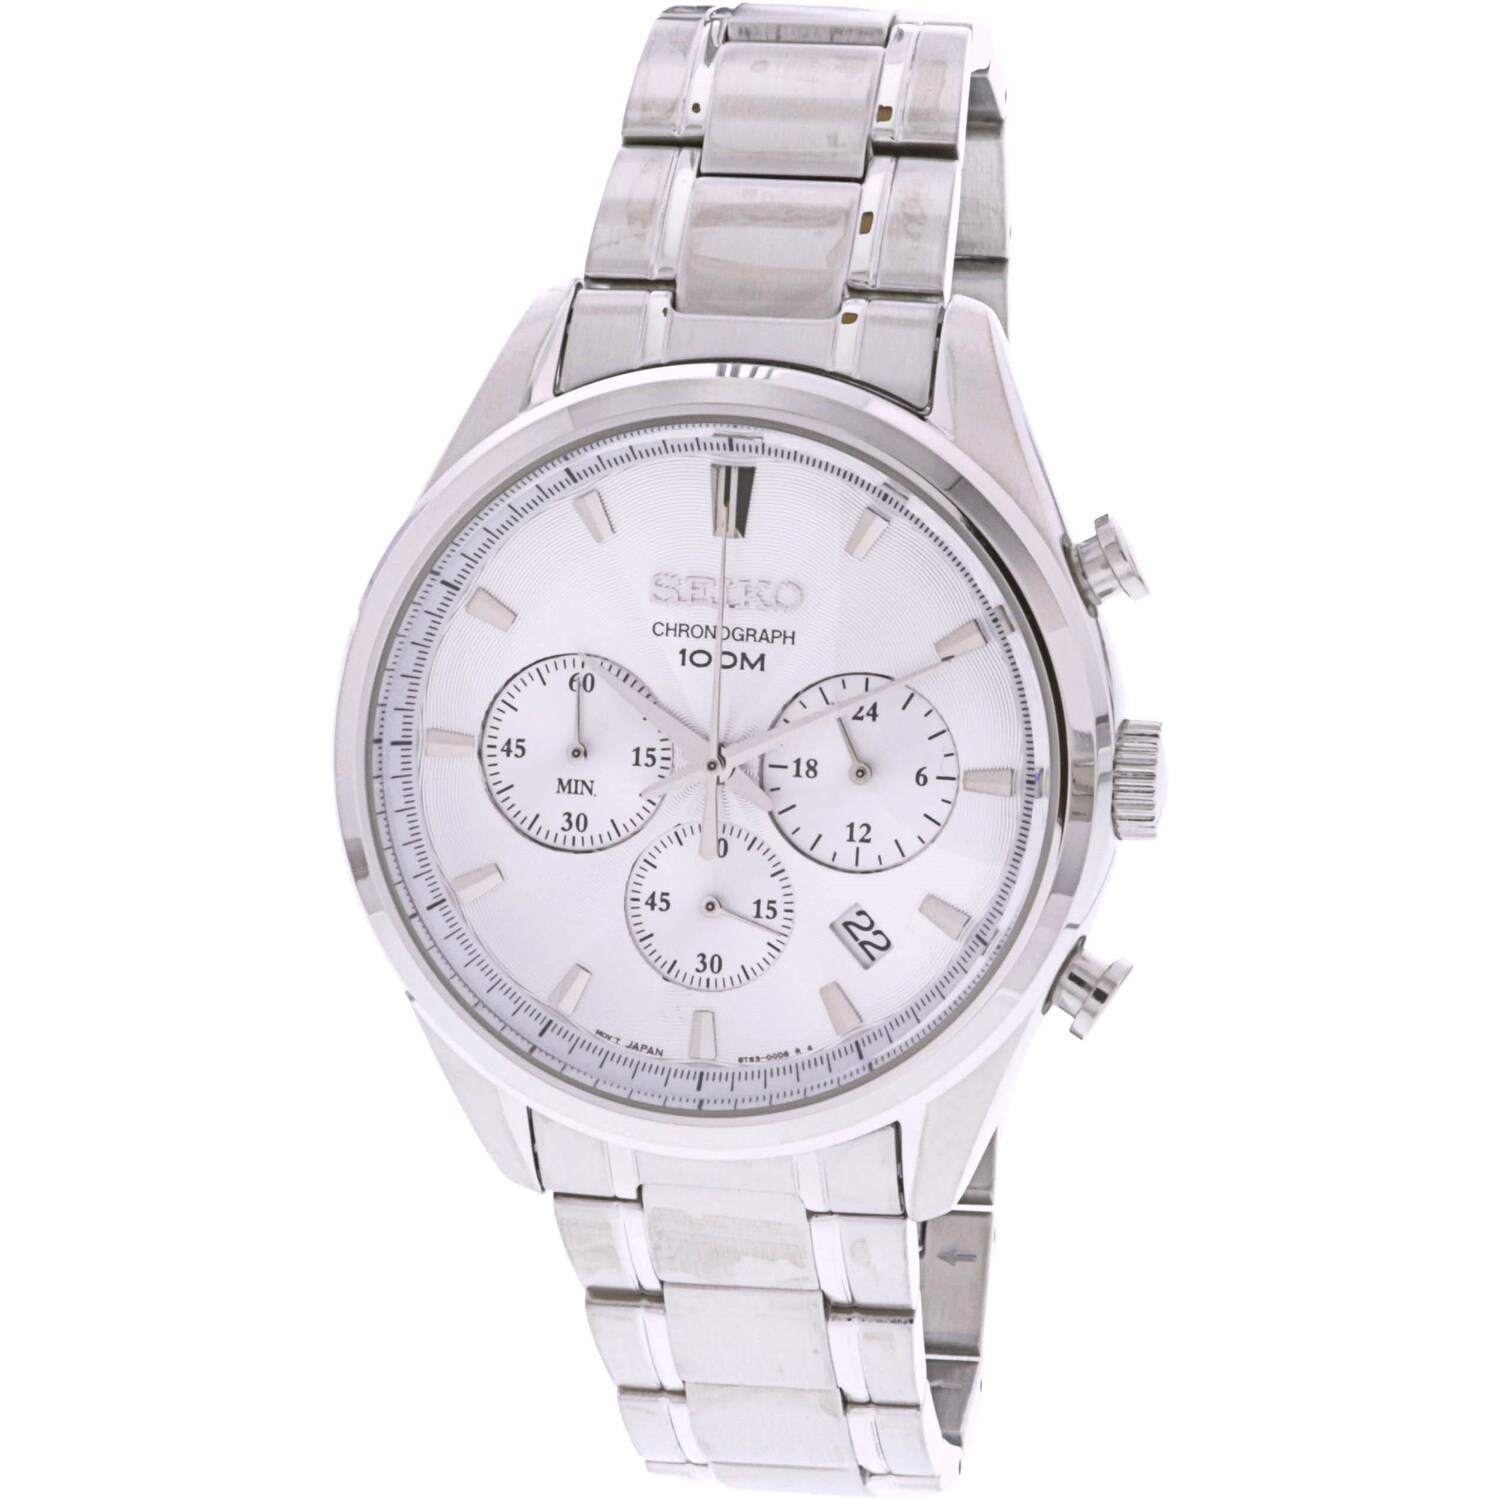 5b3d71f89 Seiko Men's Watches | Find Great Watches Deals Shopping at Overstock